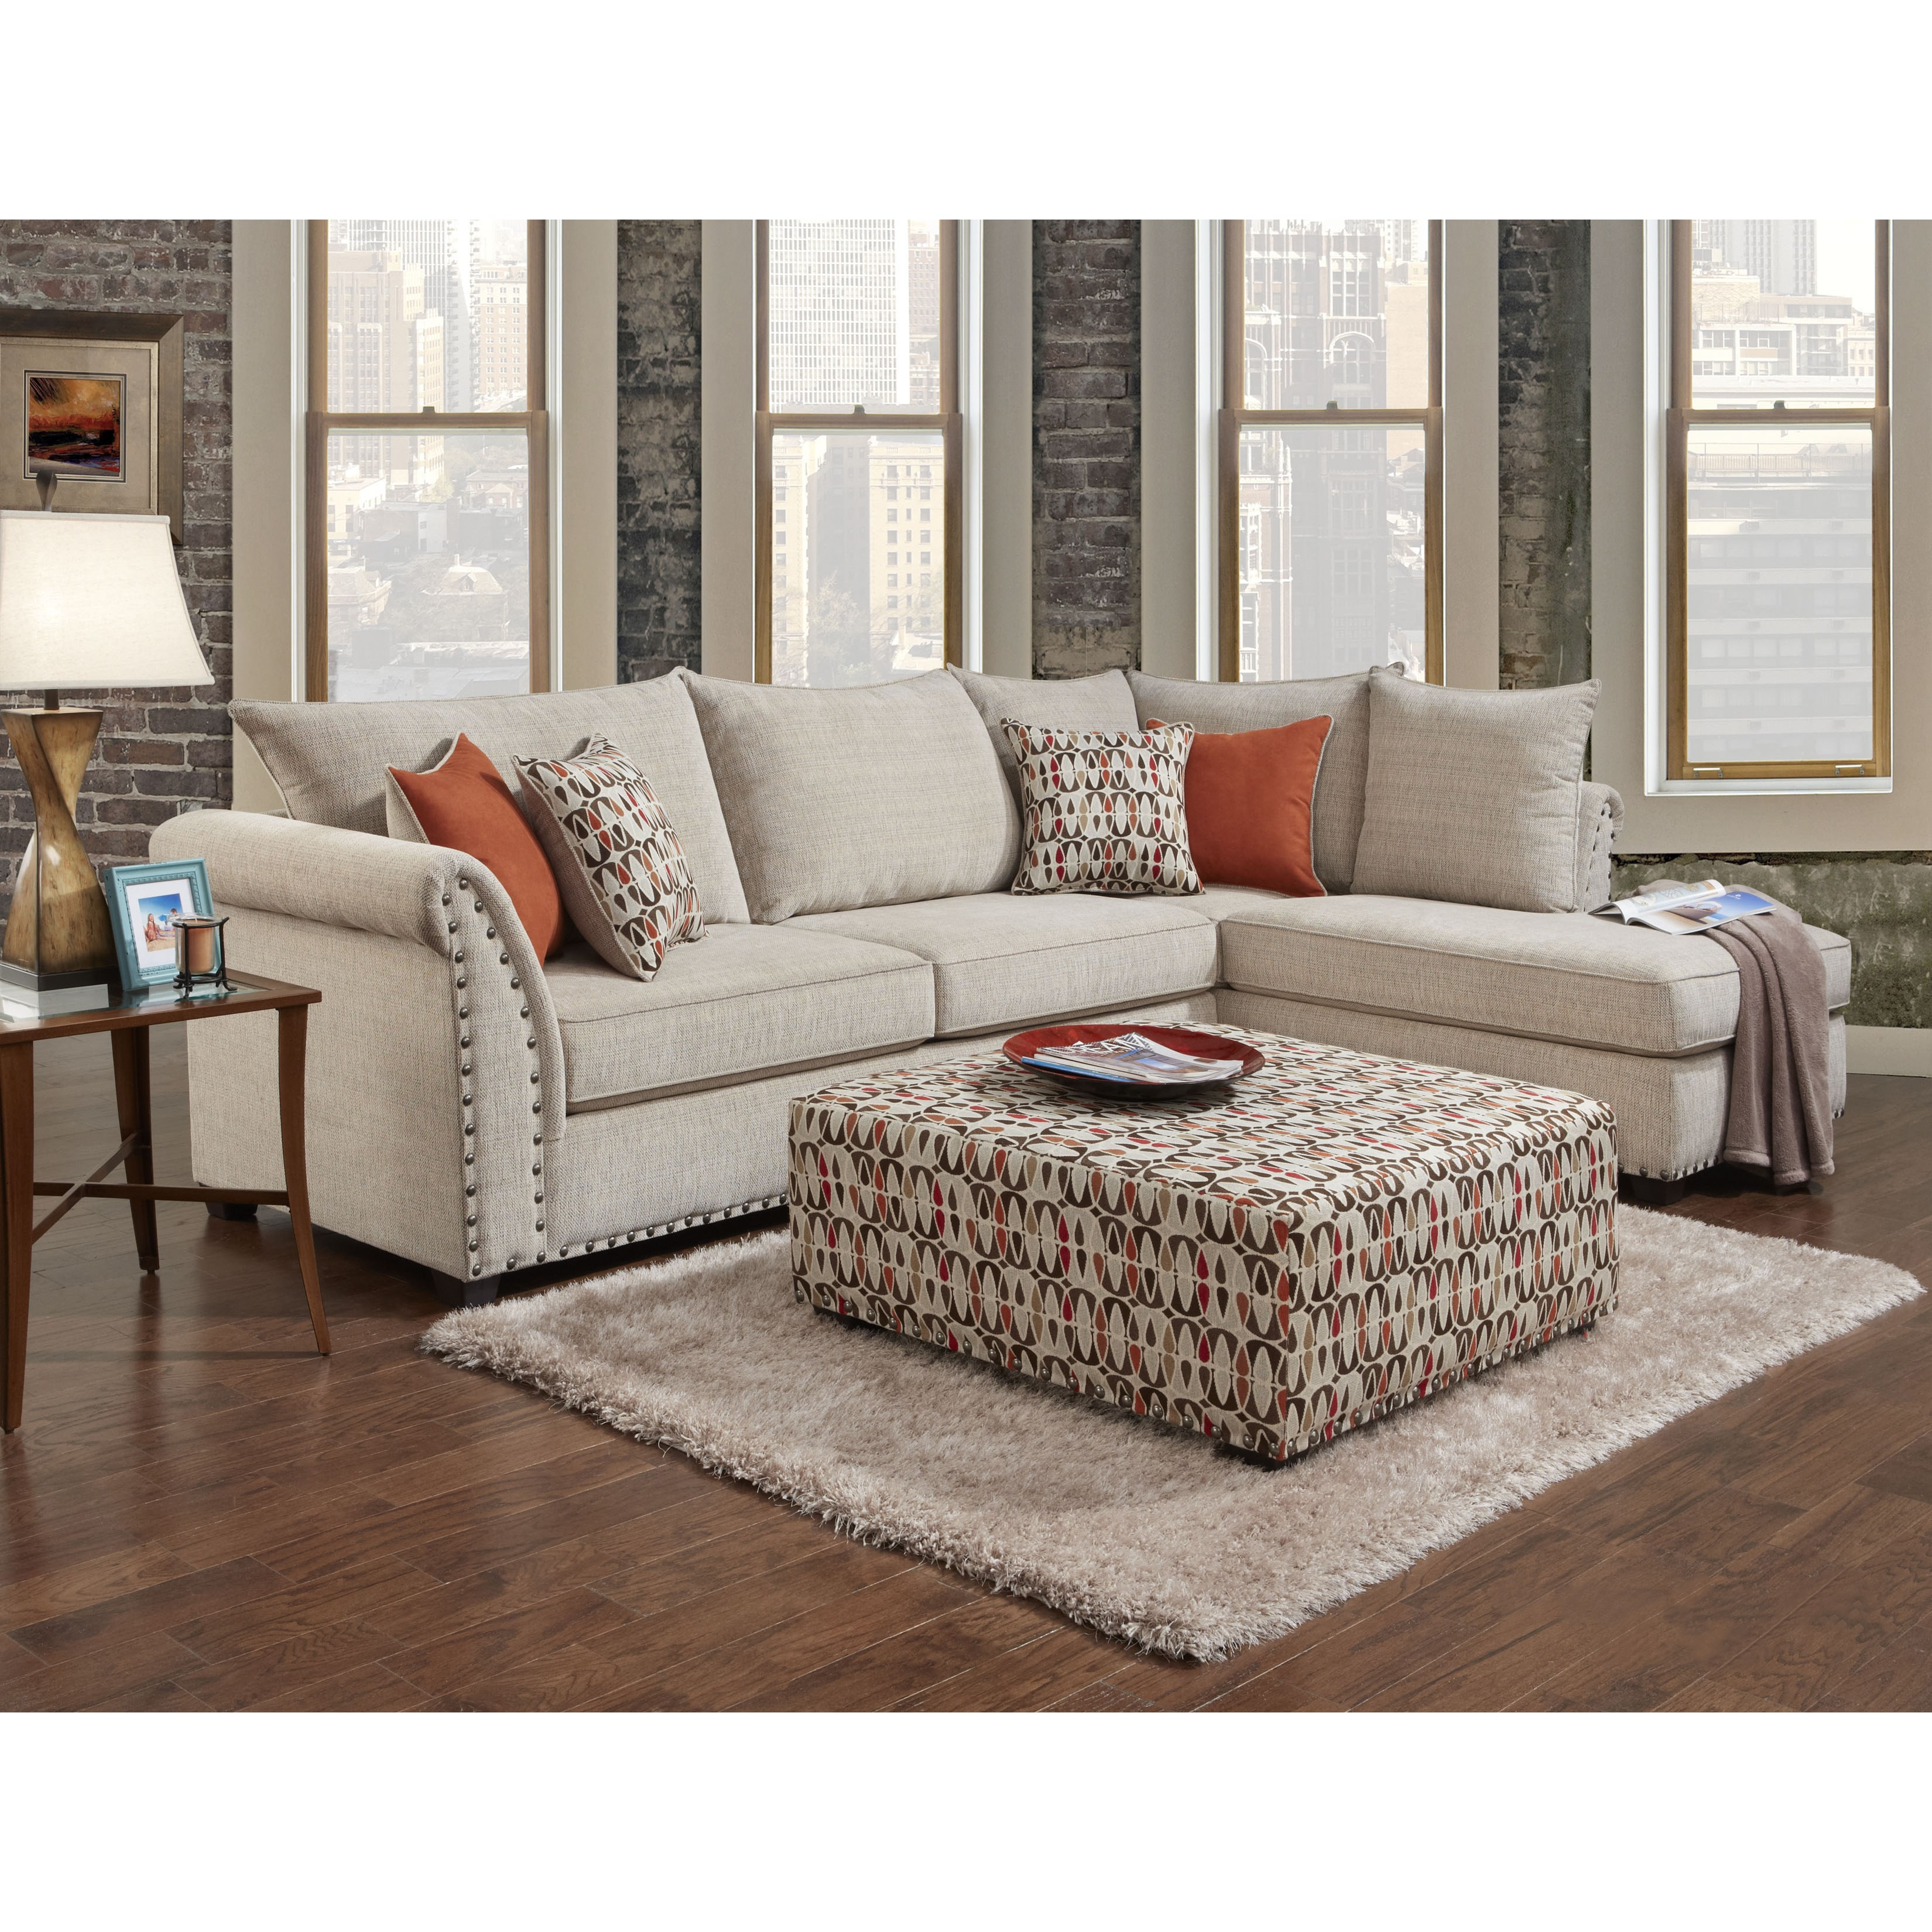 Sofa Trendz Bennington Sectional with Ottoman Set by Overstock